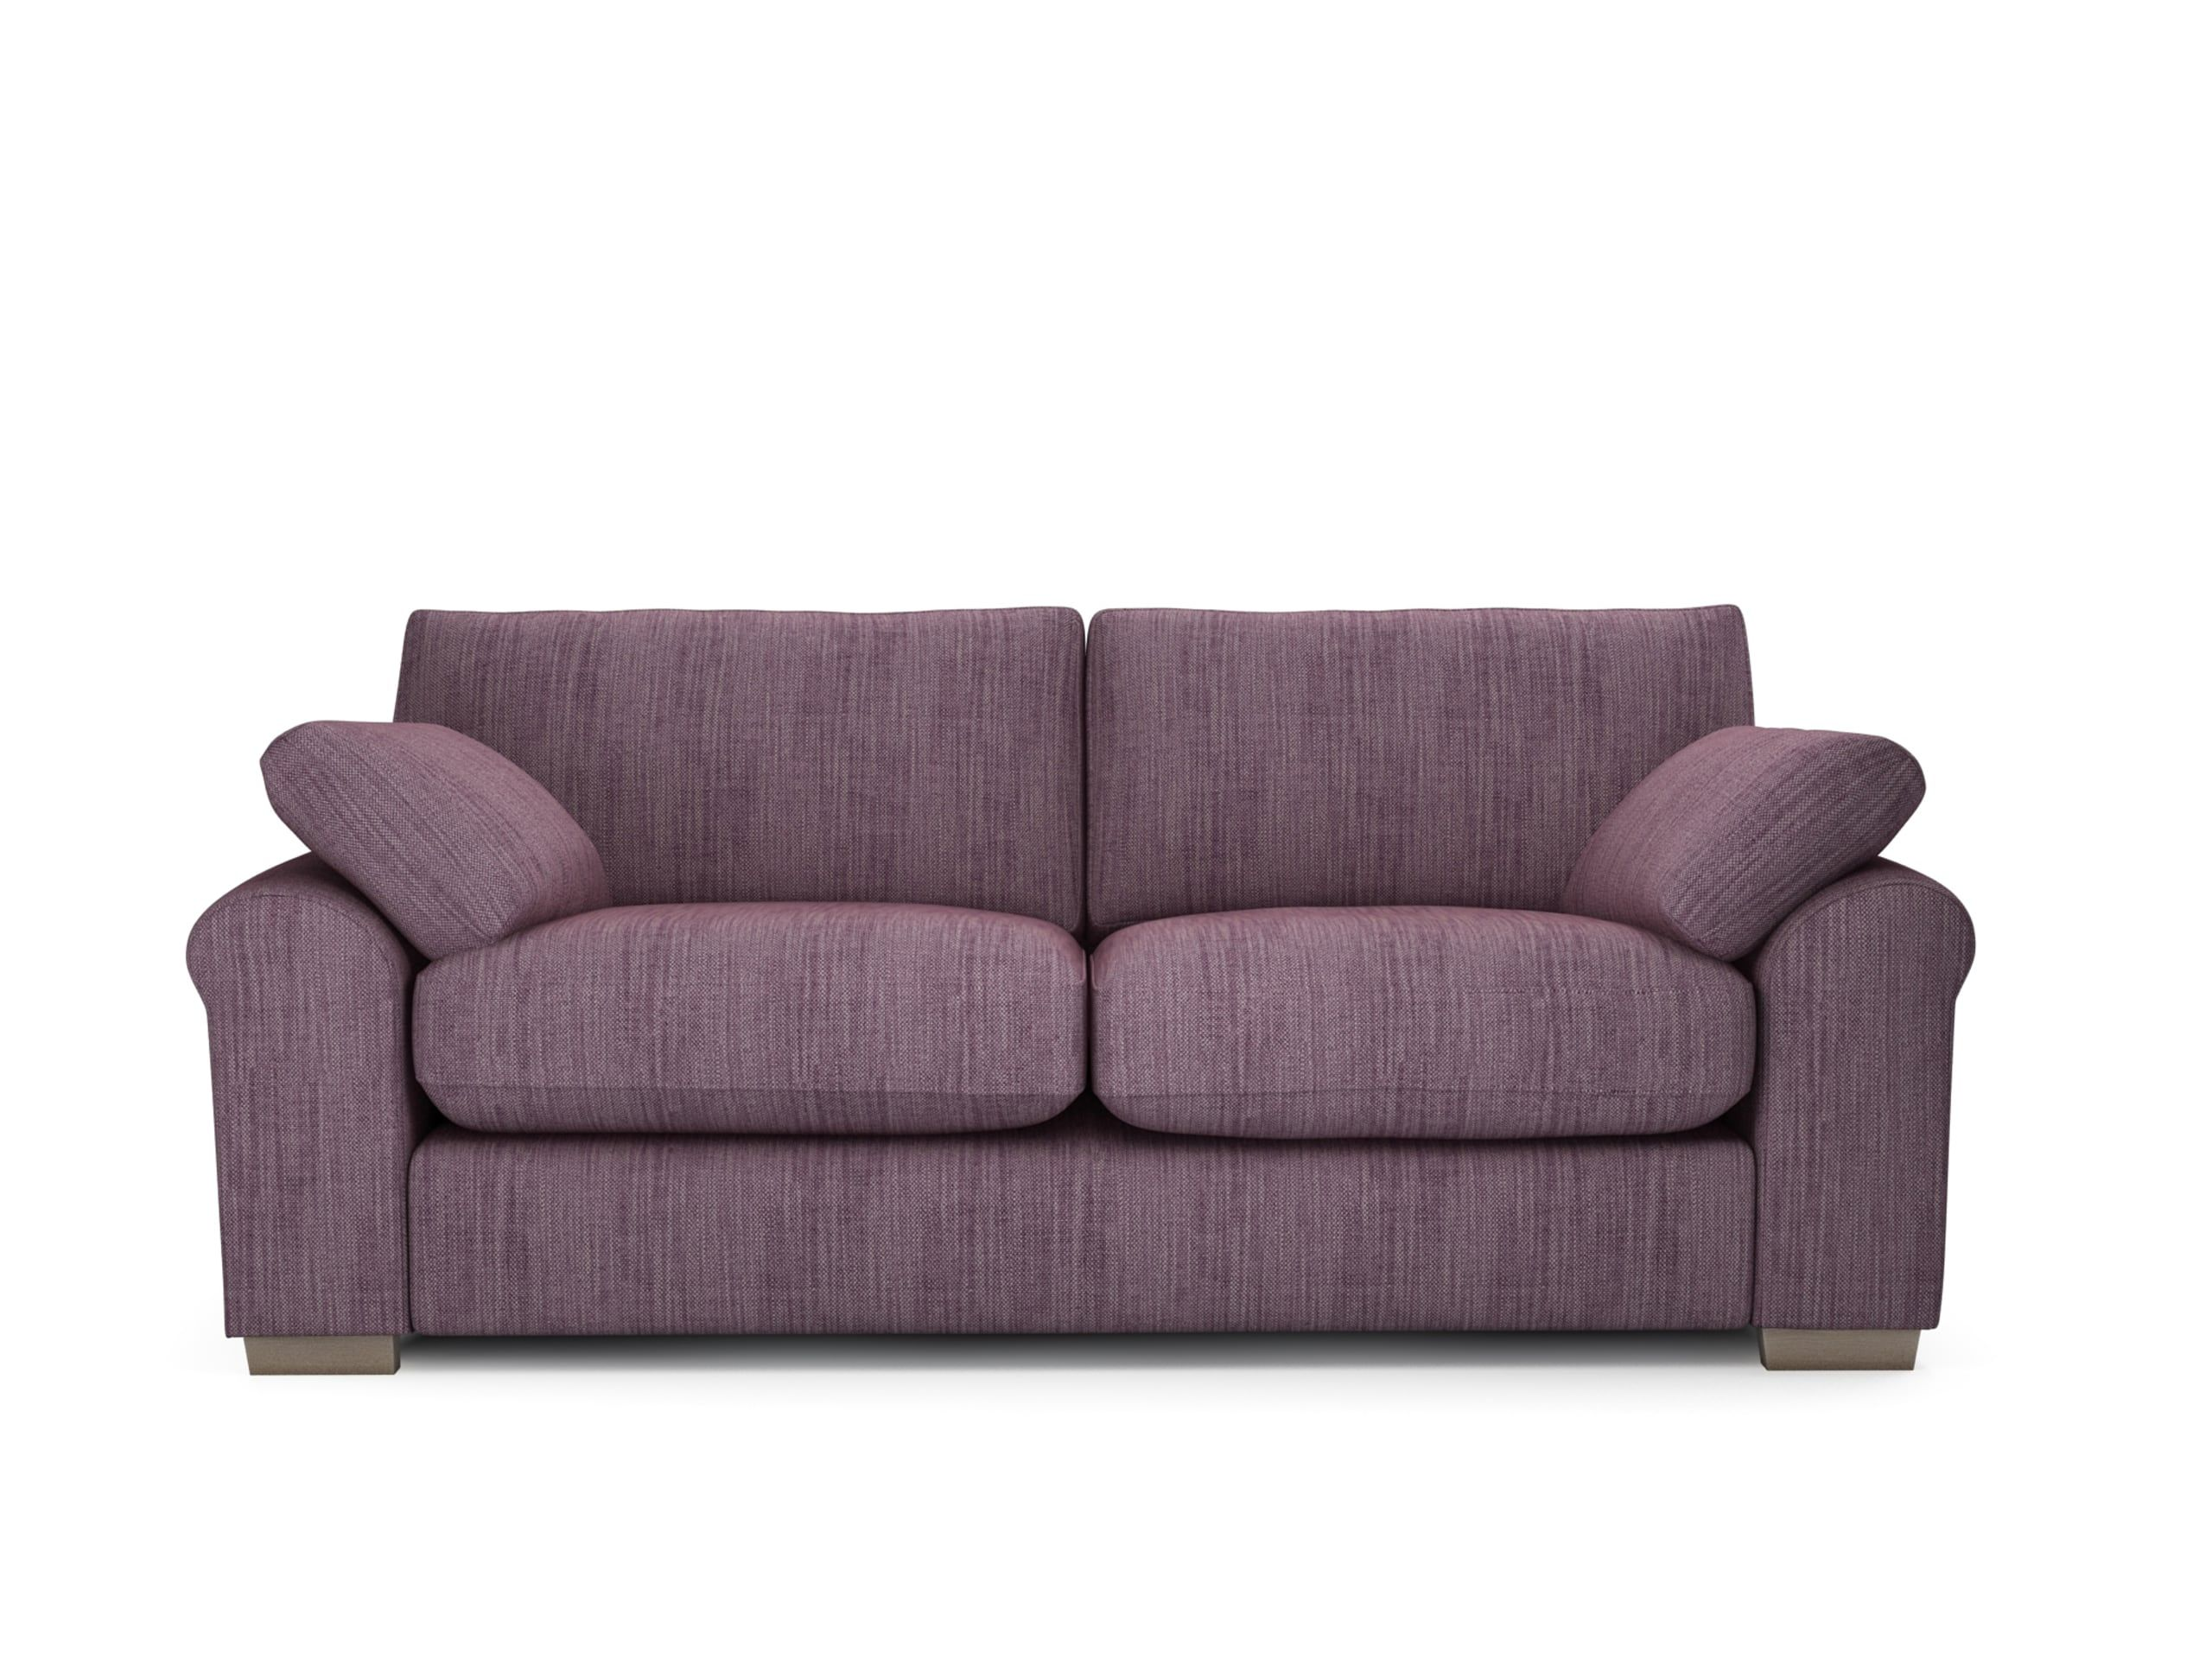 The Lounge Co Sophia 3 Seater Sofa In Soft Woven Chenille Alpine Berry Big And Comfy Soft And Sumptuous Sophia Is The Perfe Beautiful Sofas Sofa Lounge